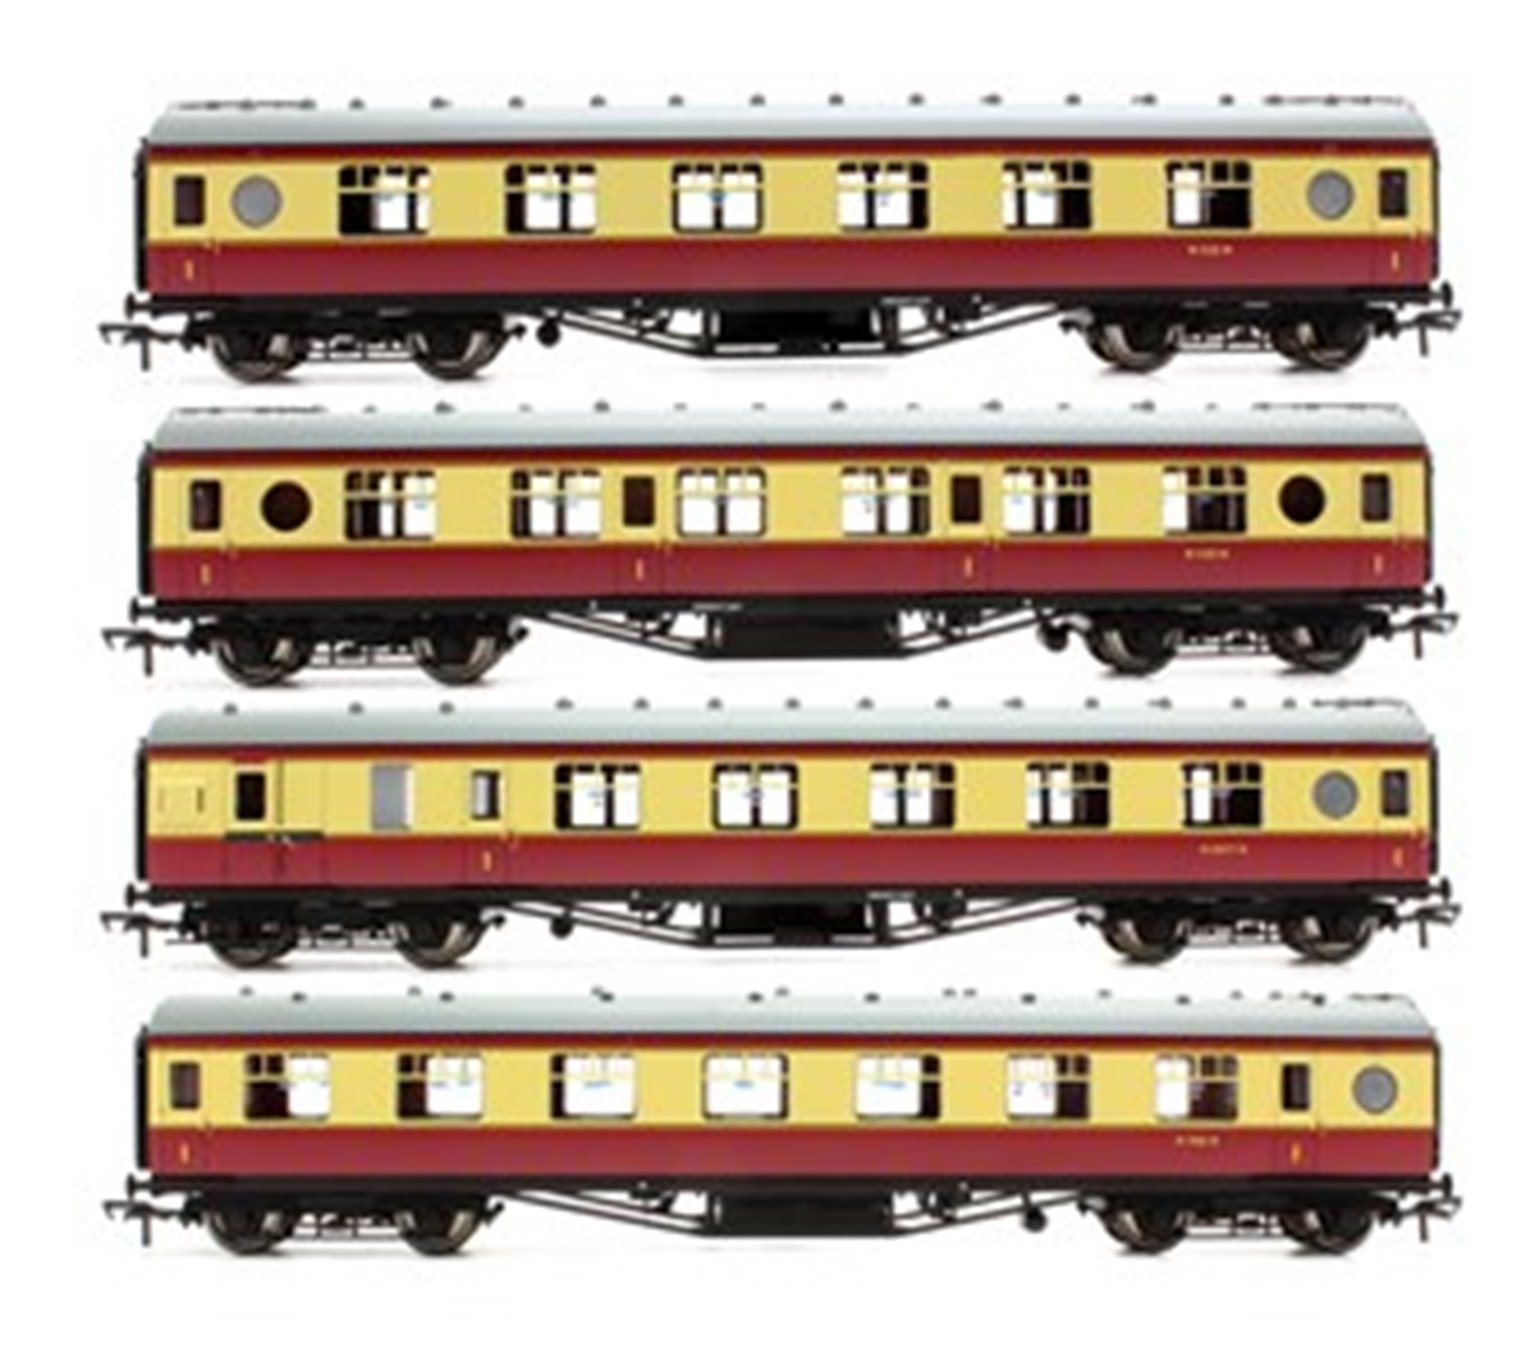 Set of 4 BR Crimson / Cream LMS Porthole Coaches